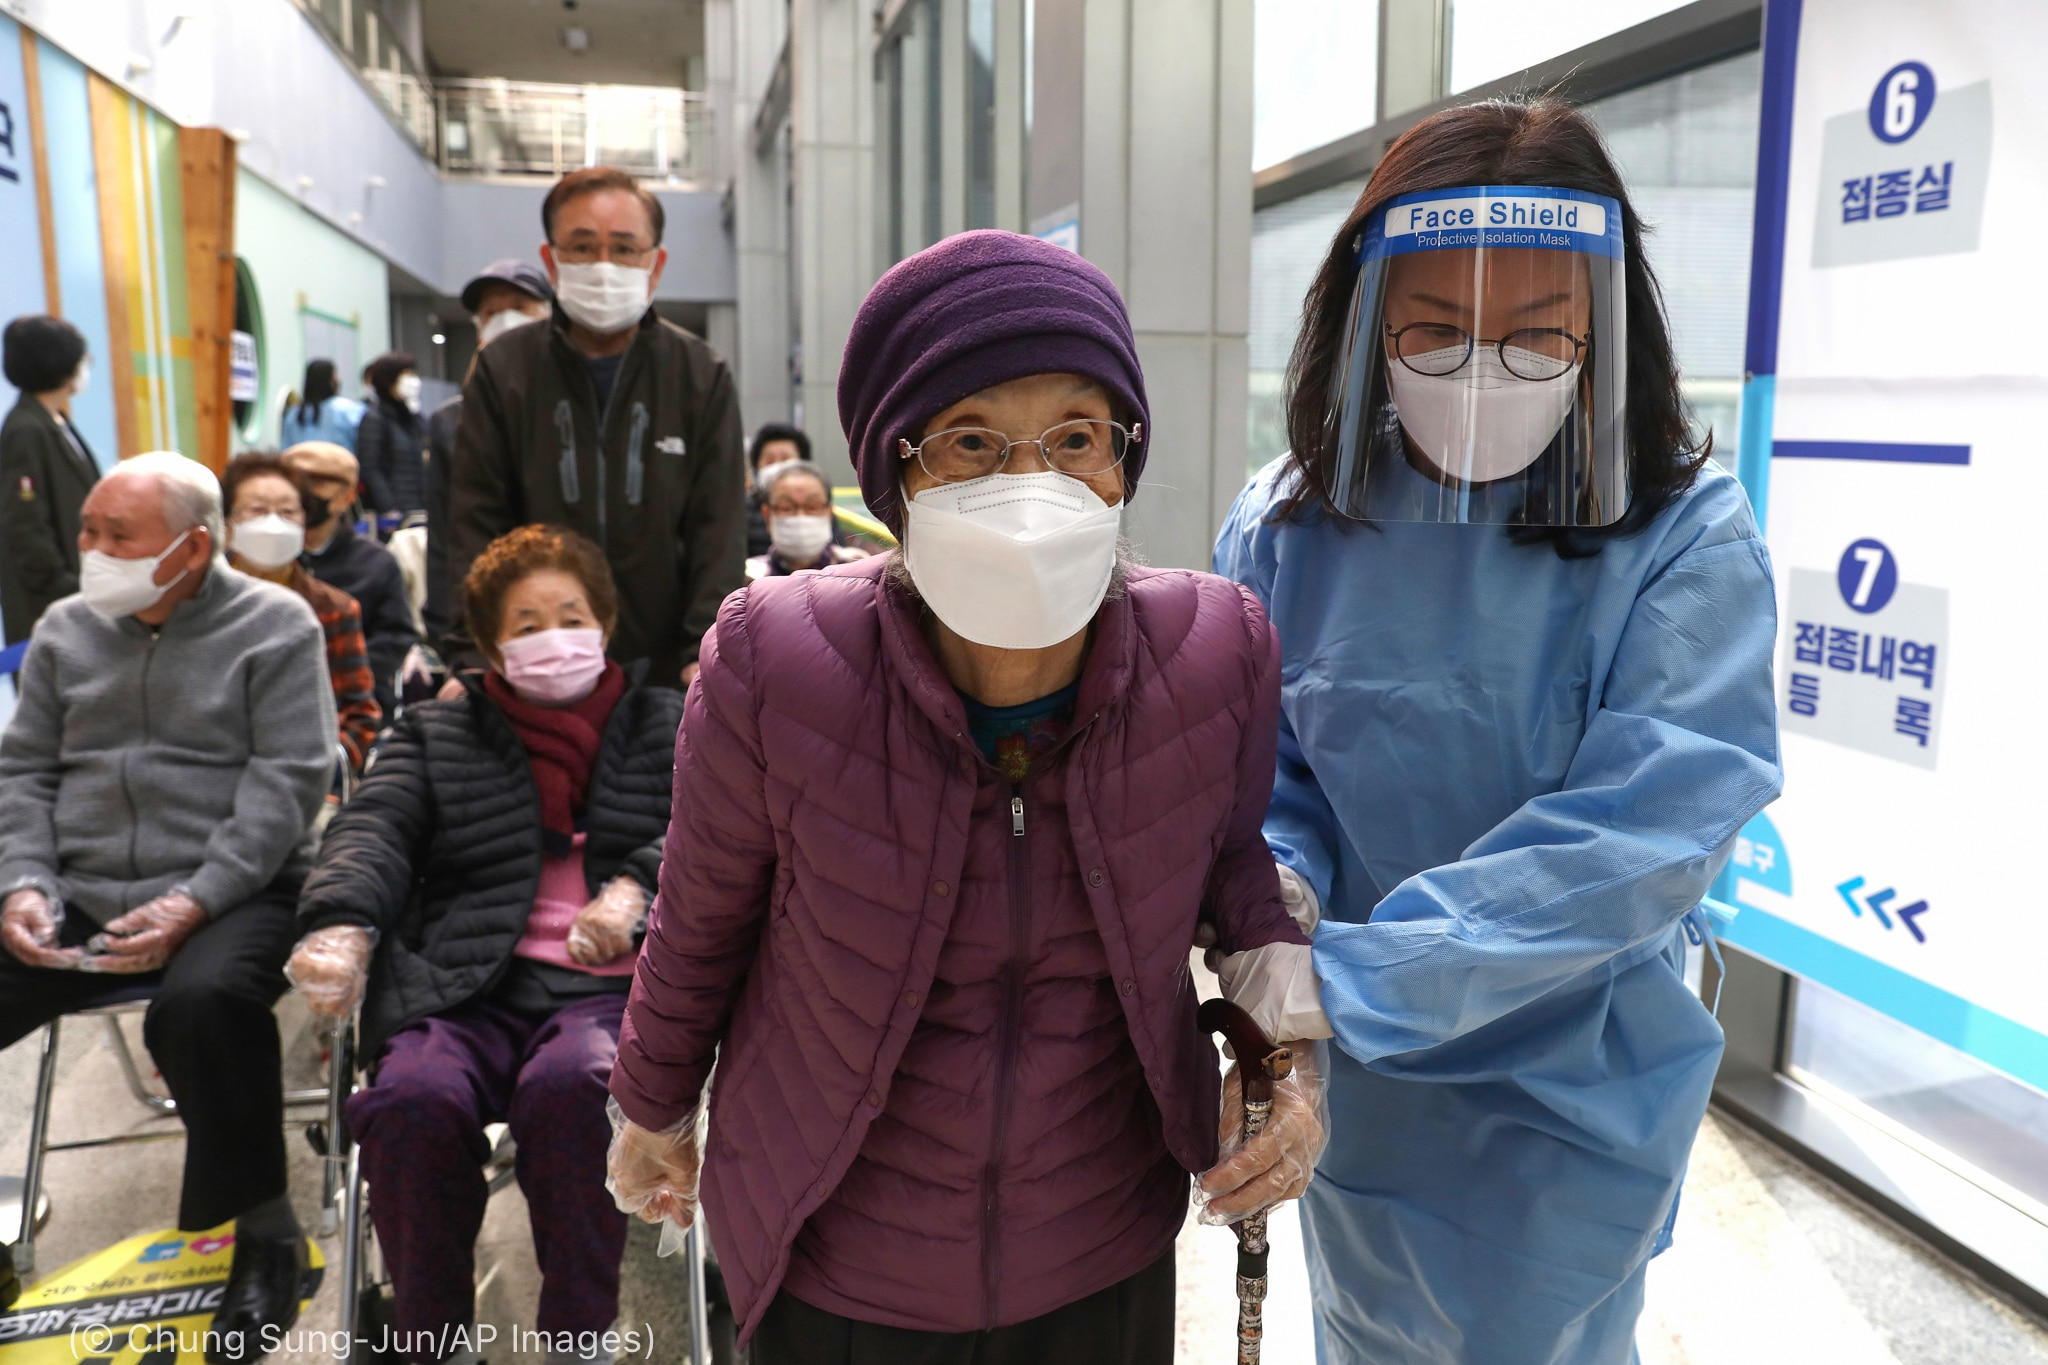 Health care worker in protective gear helping elderly woman to walk at front of long line in hall (© Chung Sung-Jun/AP Images)